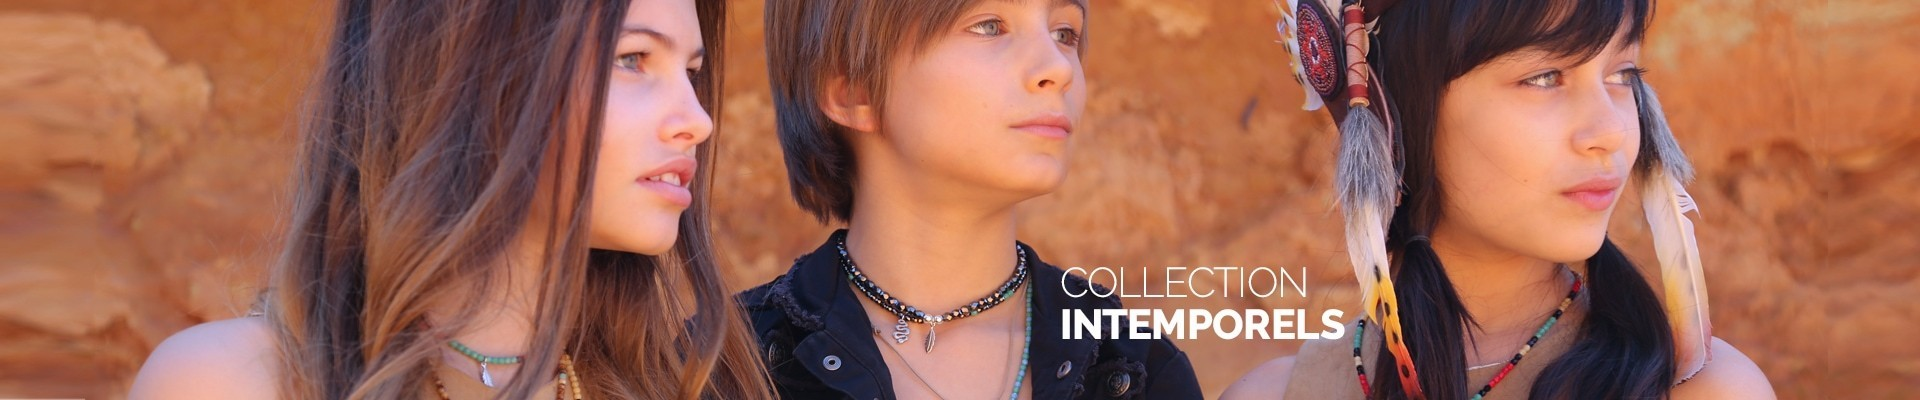 Collection Les Intemporels - Colliers et Bracelets